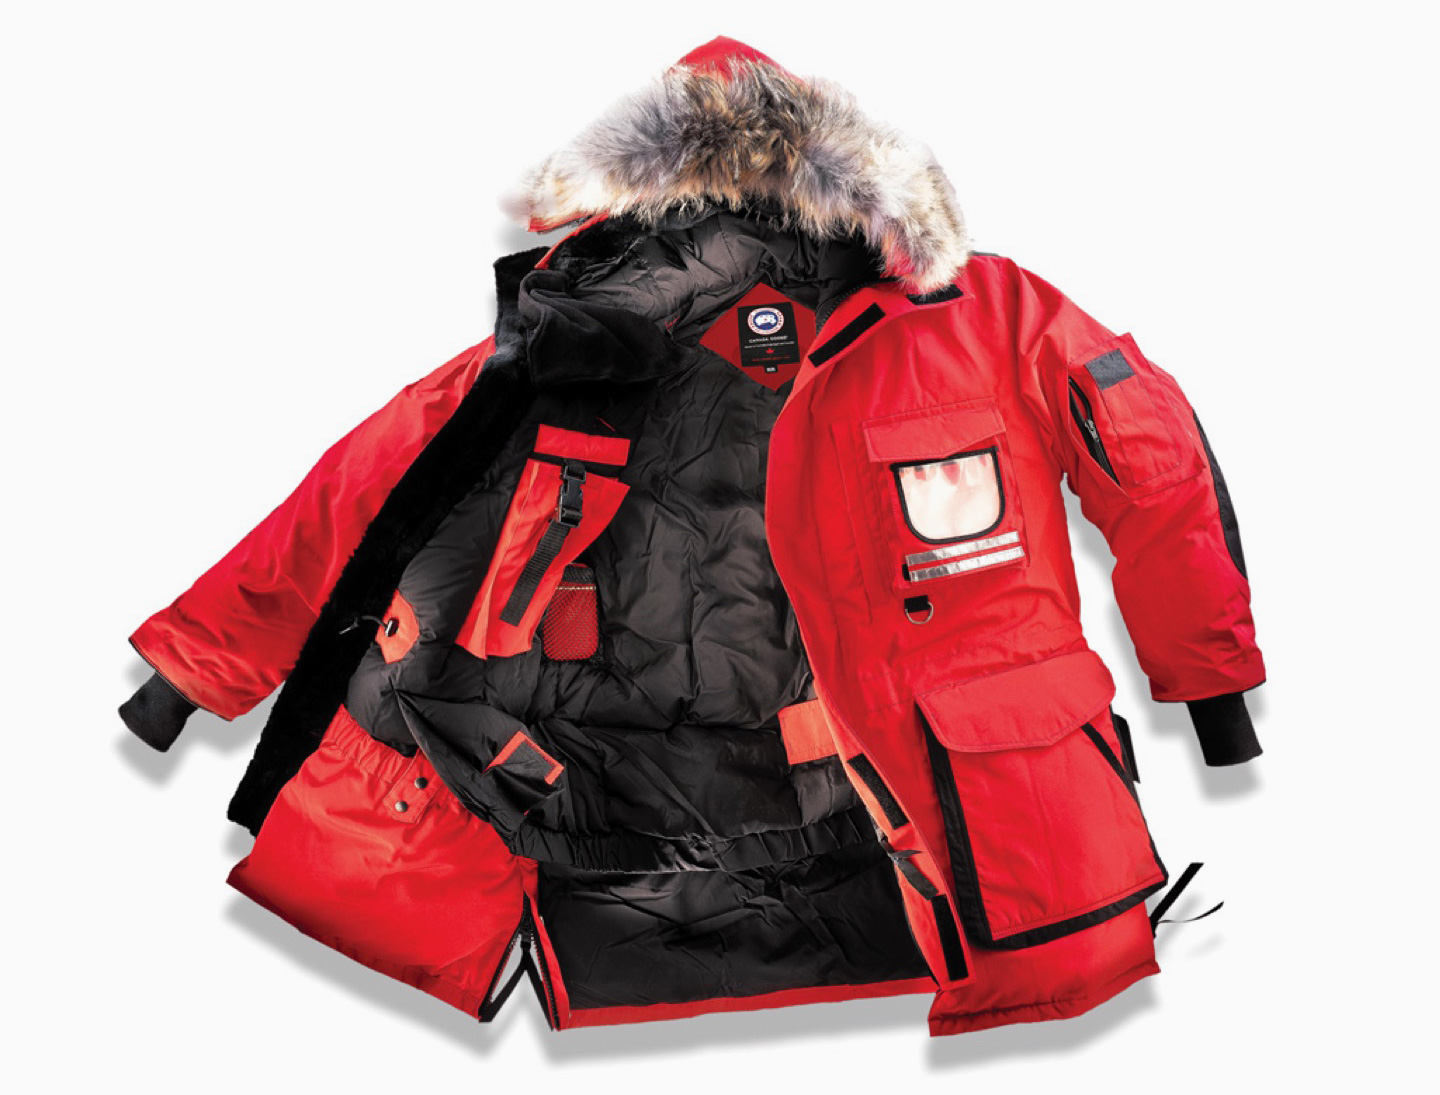 Canada Goose chilliwack parka online authentic - Explore | Get to know a Vendor: Canada Goose